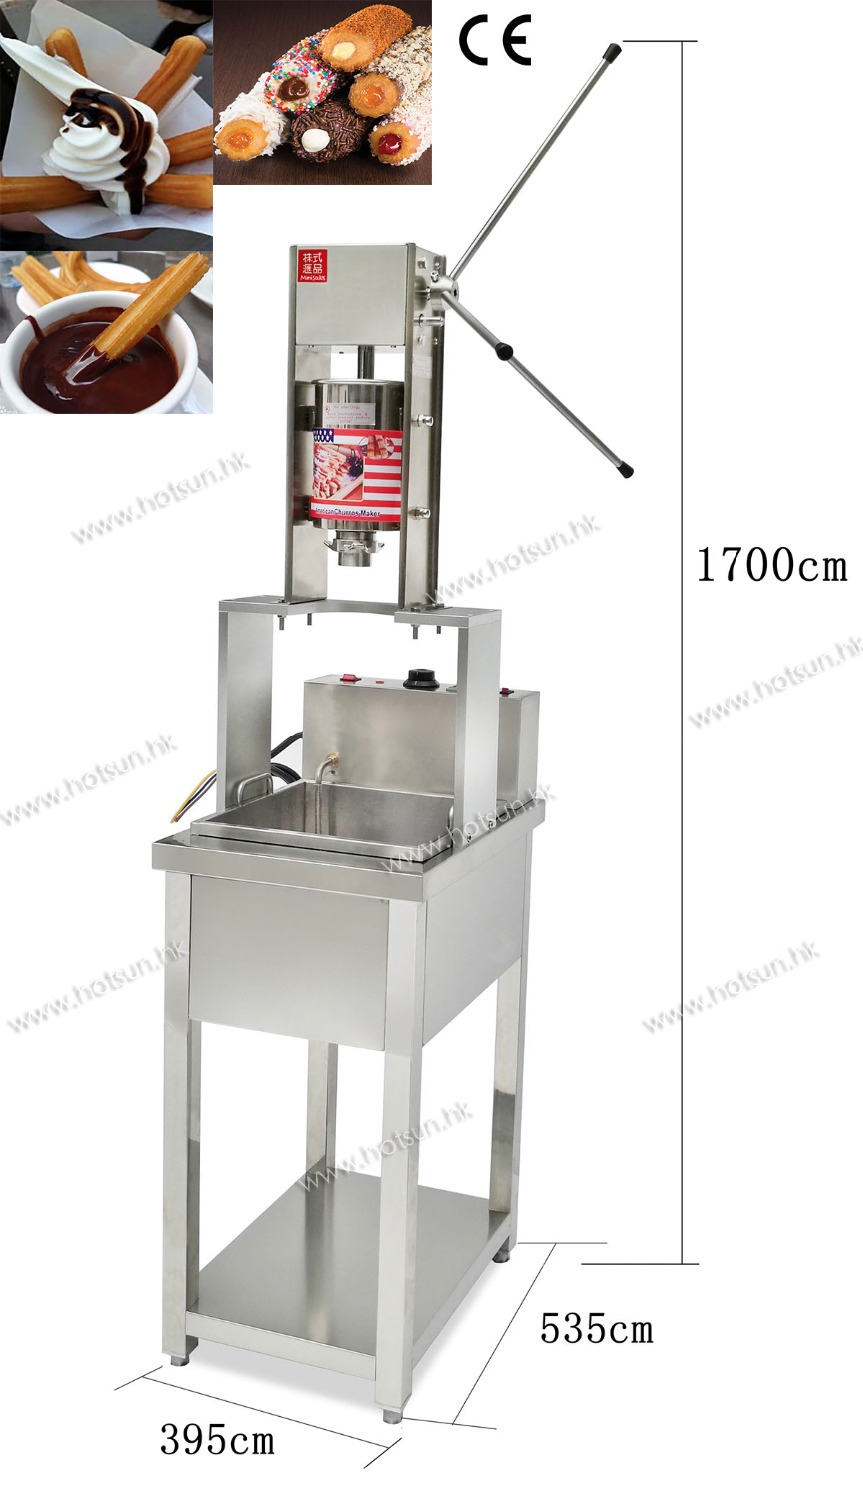 Professional 304 Stainless Steel 3L Churros Maker machine with 20L Electric Deep Fryer commercial deluxe stainless steel 3l churro maker 6l electric fryer manual spanish churros making machine capacity 3l